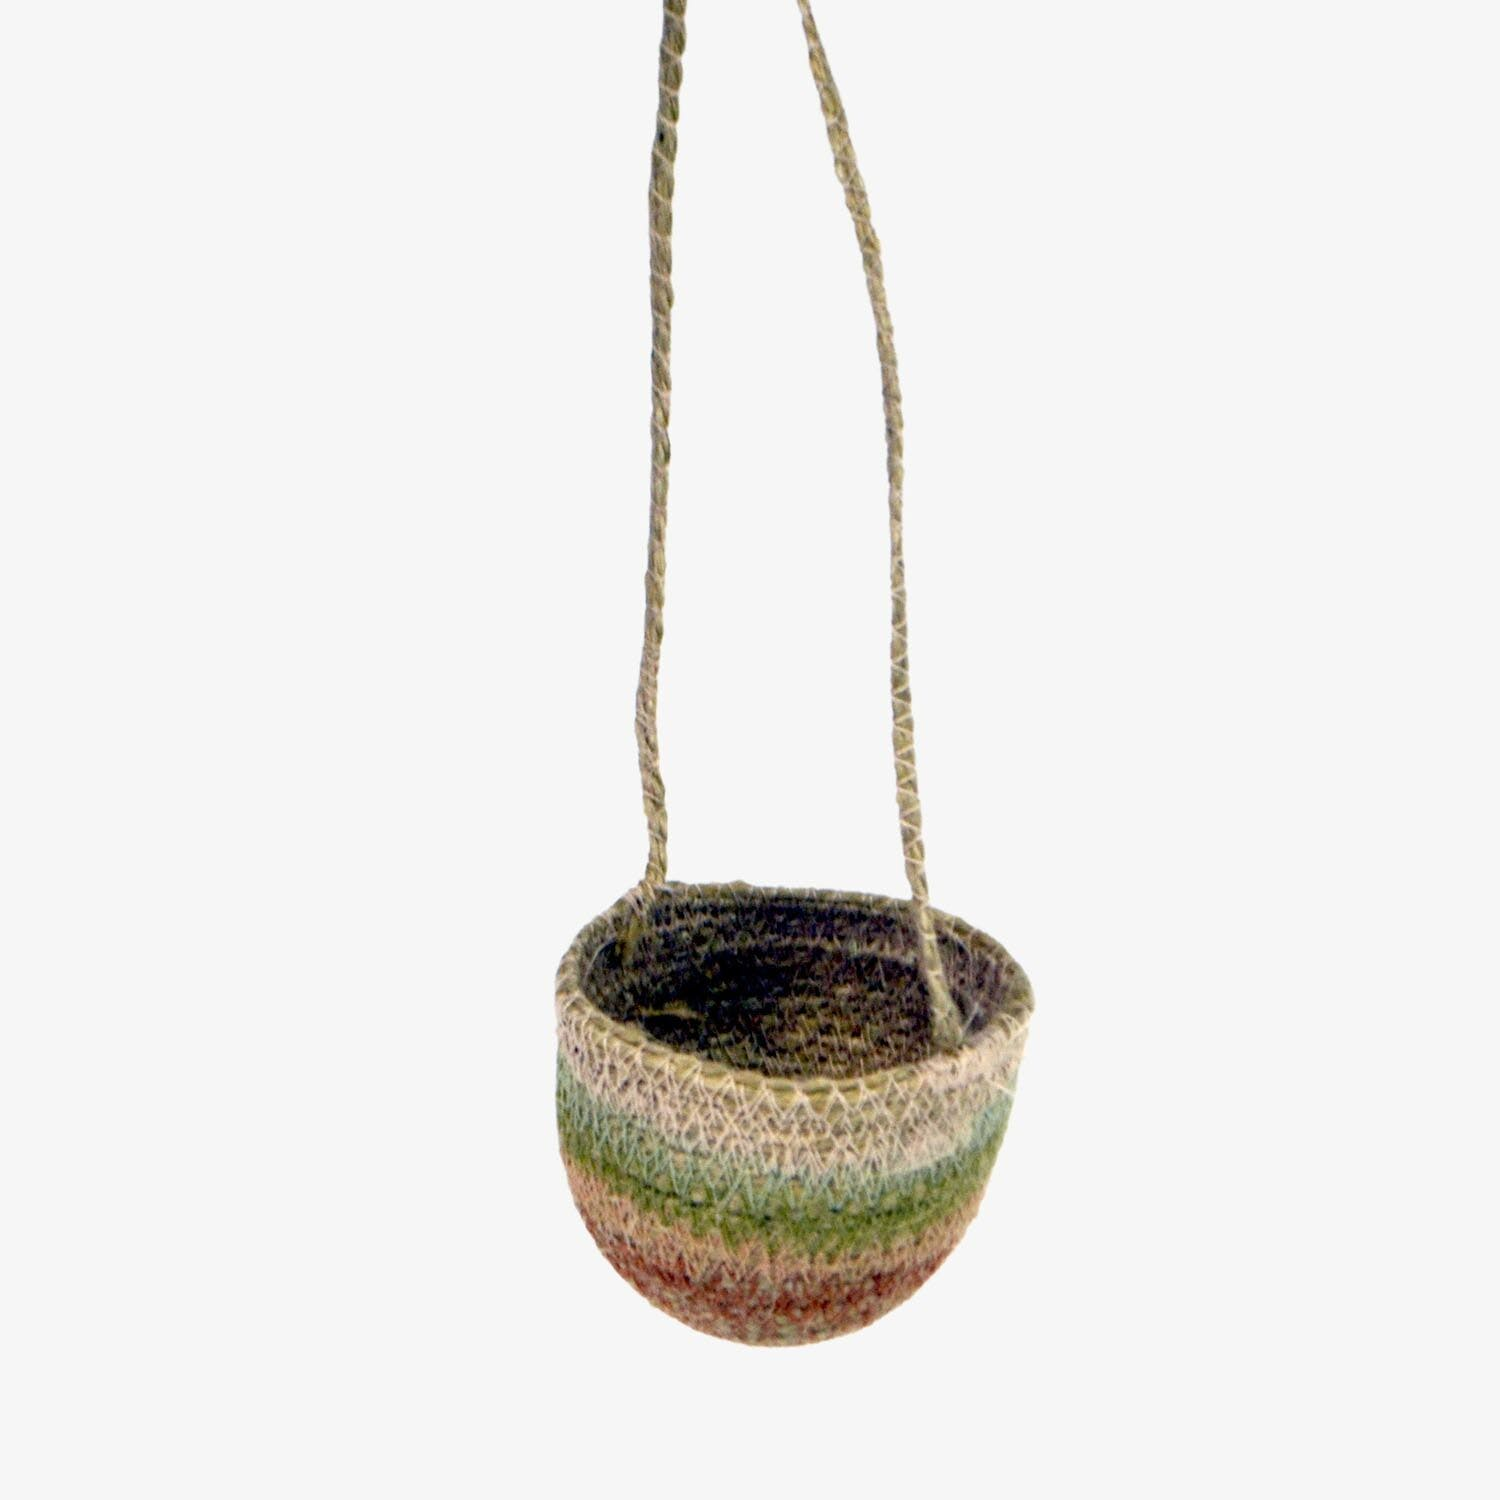 Desert Flower Mini Hanging Planter